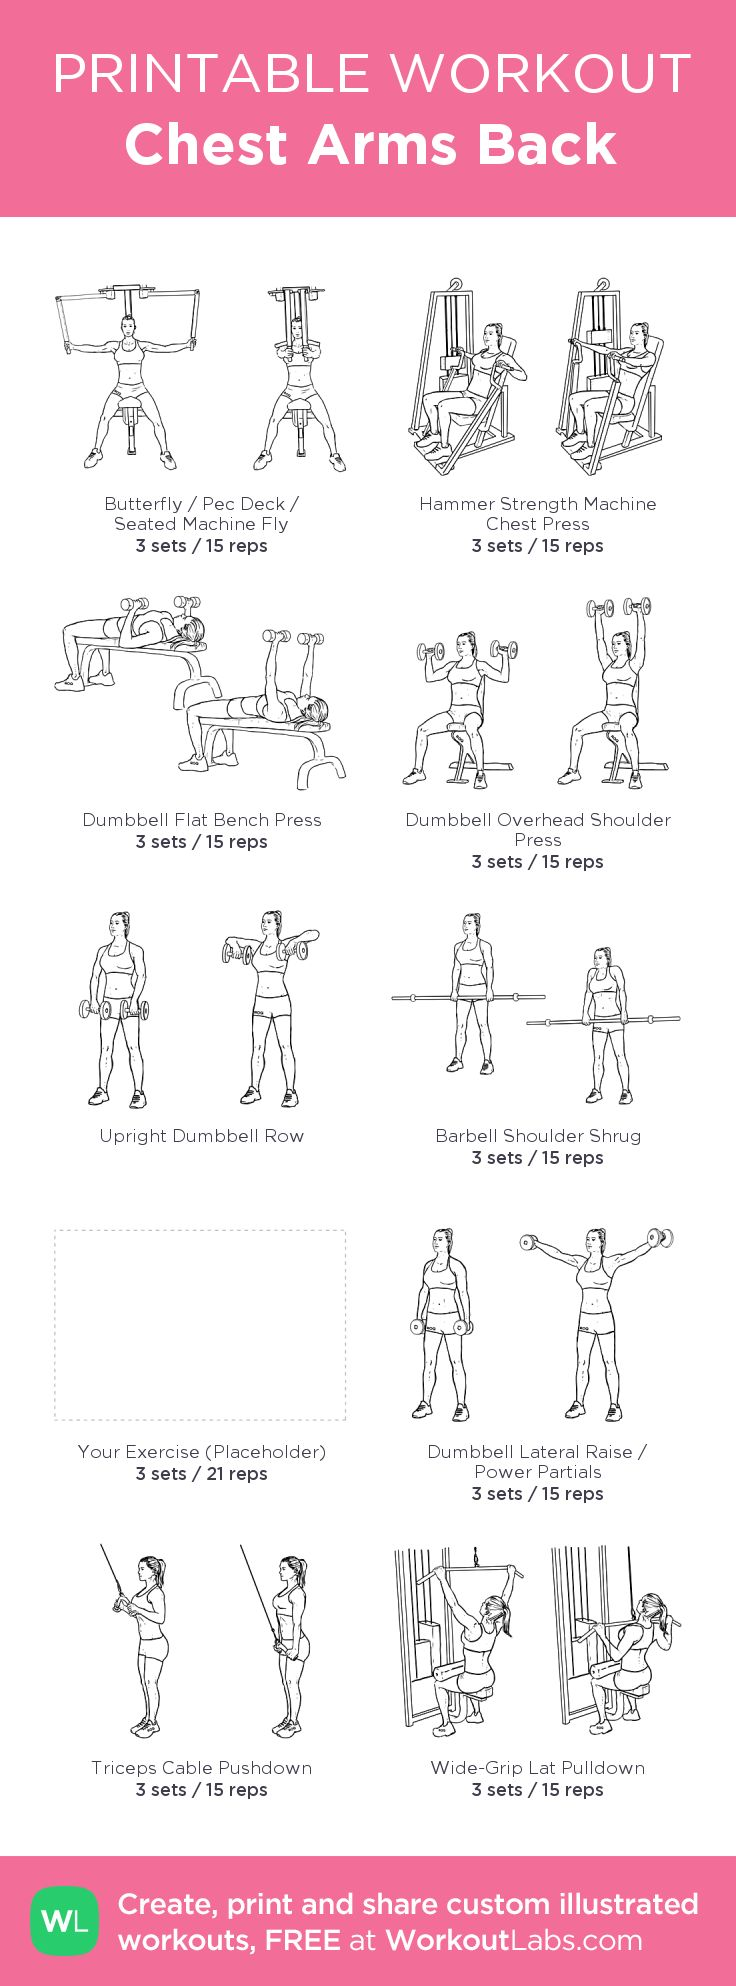 Chest Arms Back: my visual workout created at WorkoutLabs.com • Click through to customize and download as a FREE PDF! #customworkout